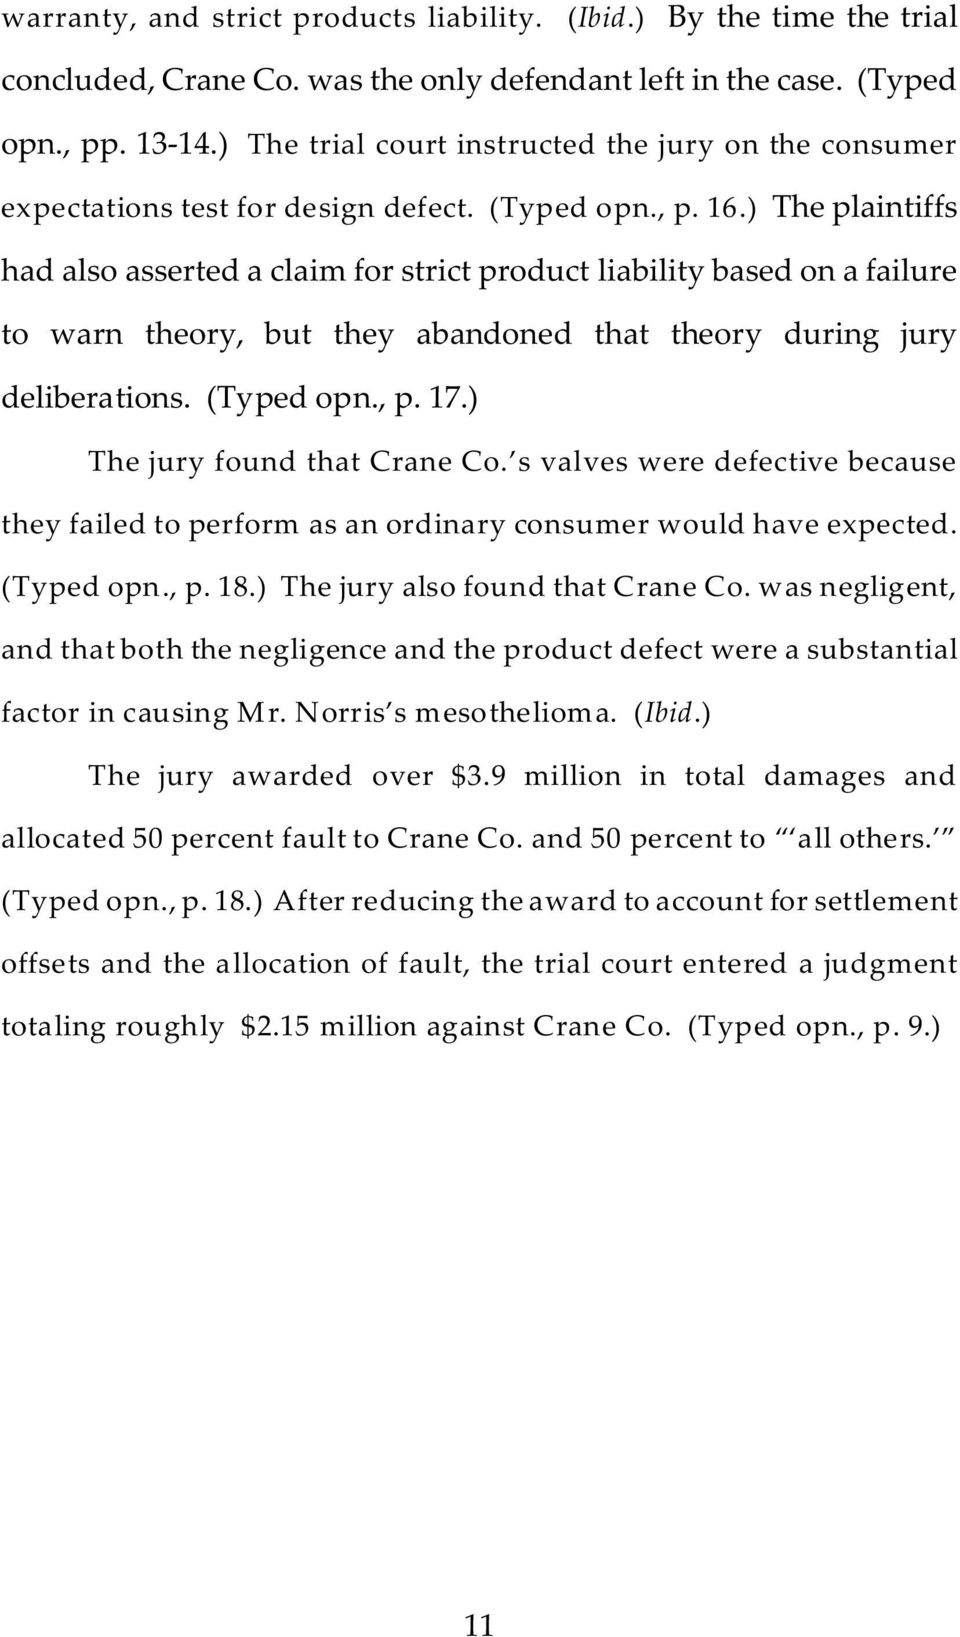 ) The plaintiffs had also asserted a claim for strict product liability based on a failure to warn theory, but they abandoned that theory during jury deliberations. (Typed opn., p. 17.